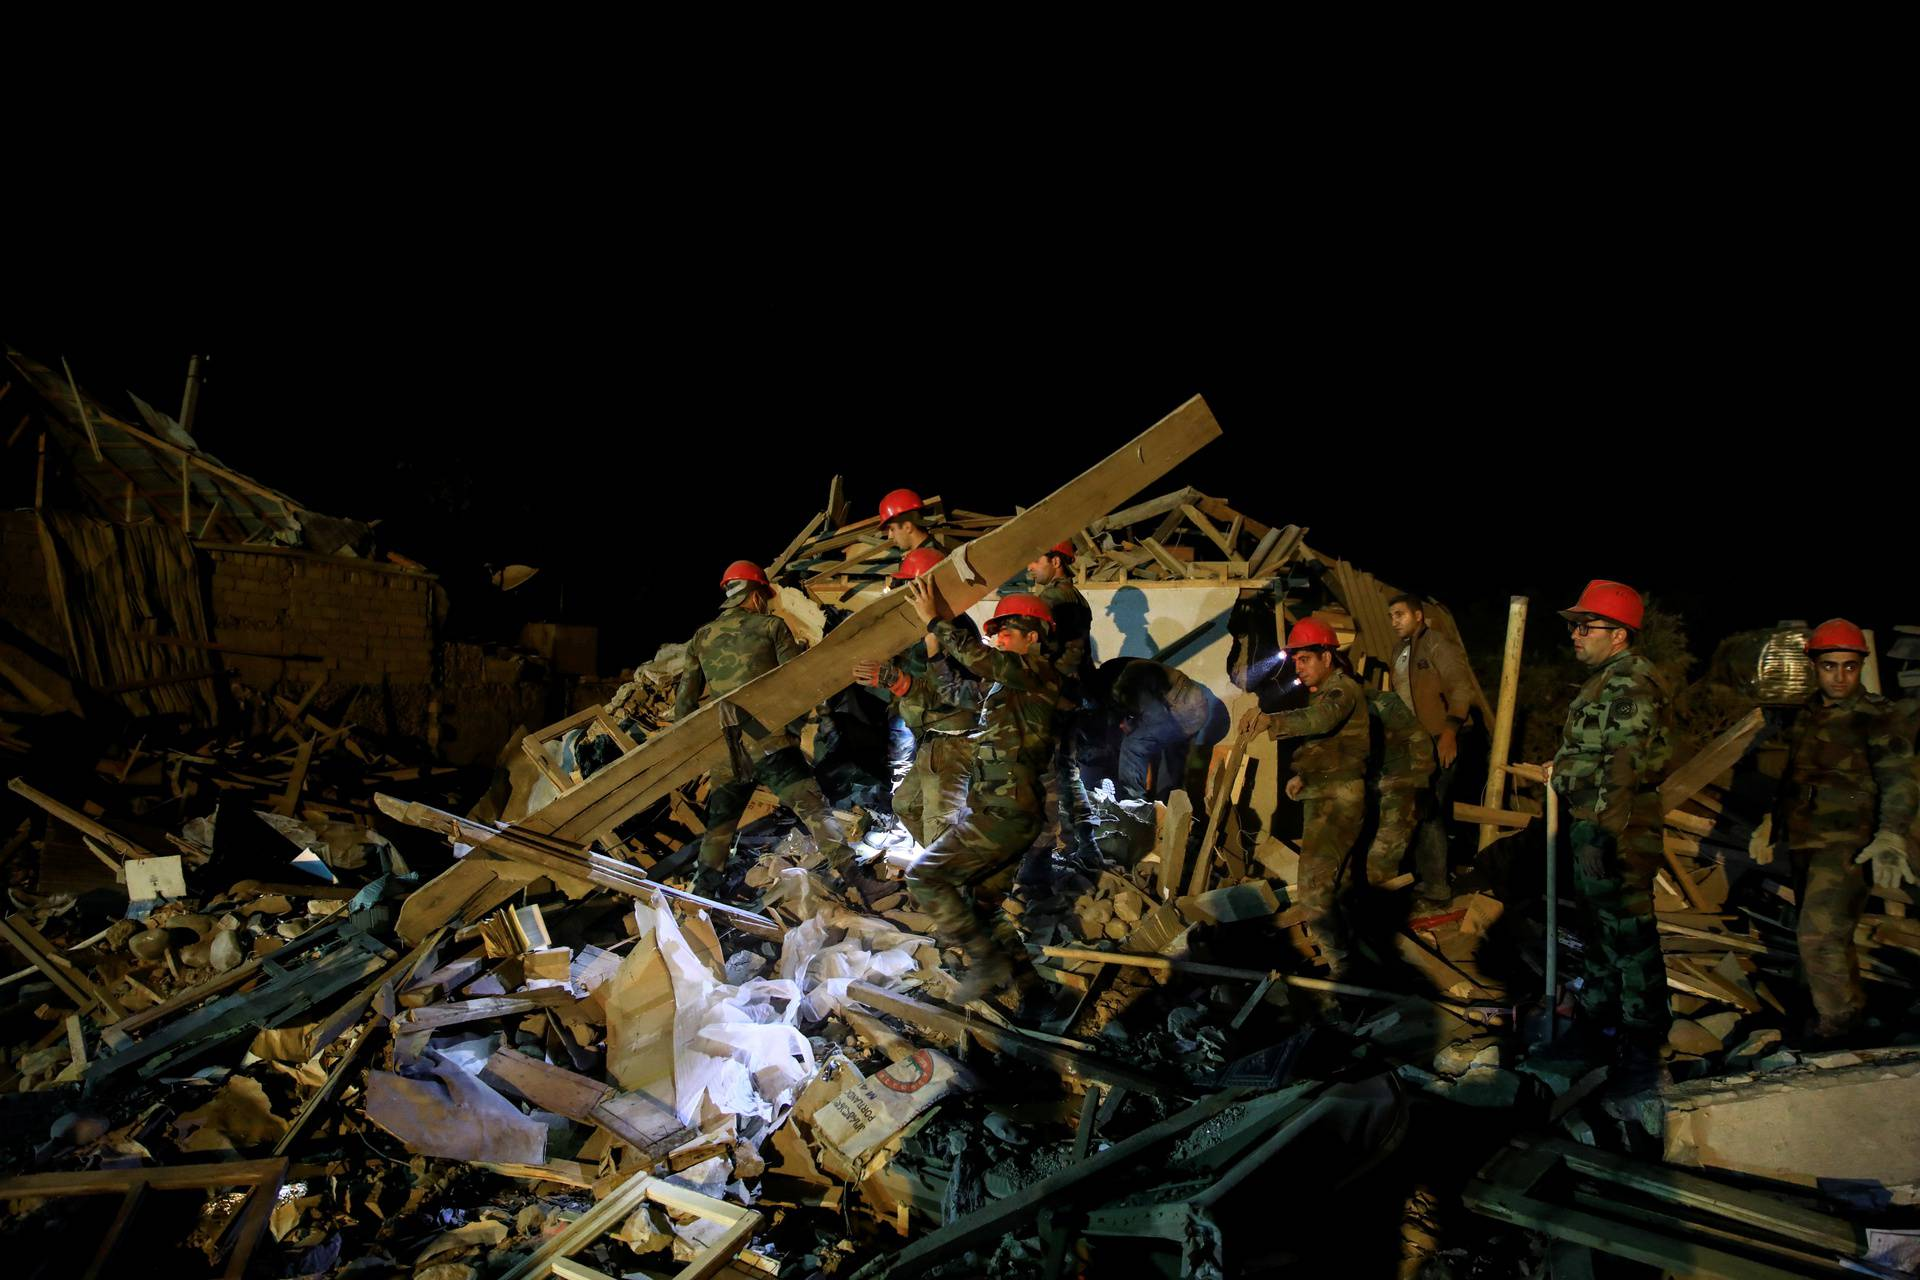 Search and rescue teams work on the blast site hit by a rocket in the city of Ganja